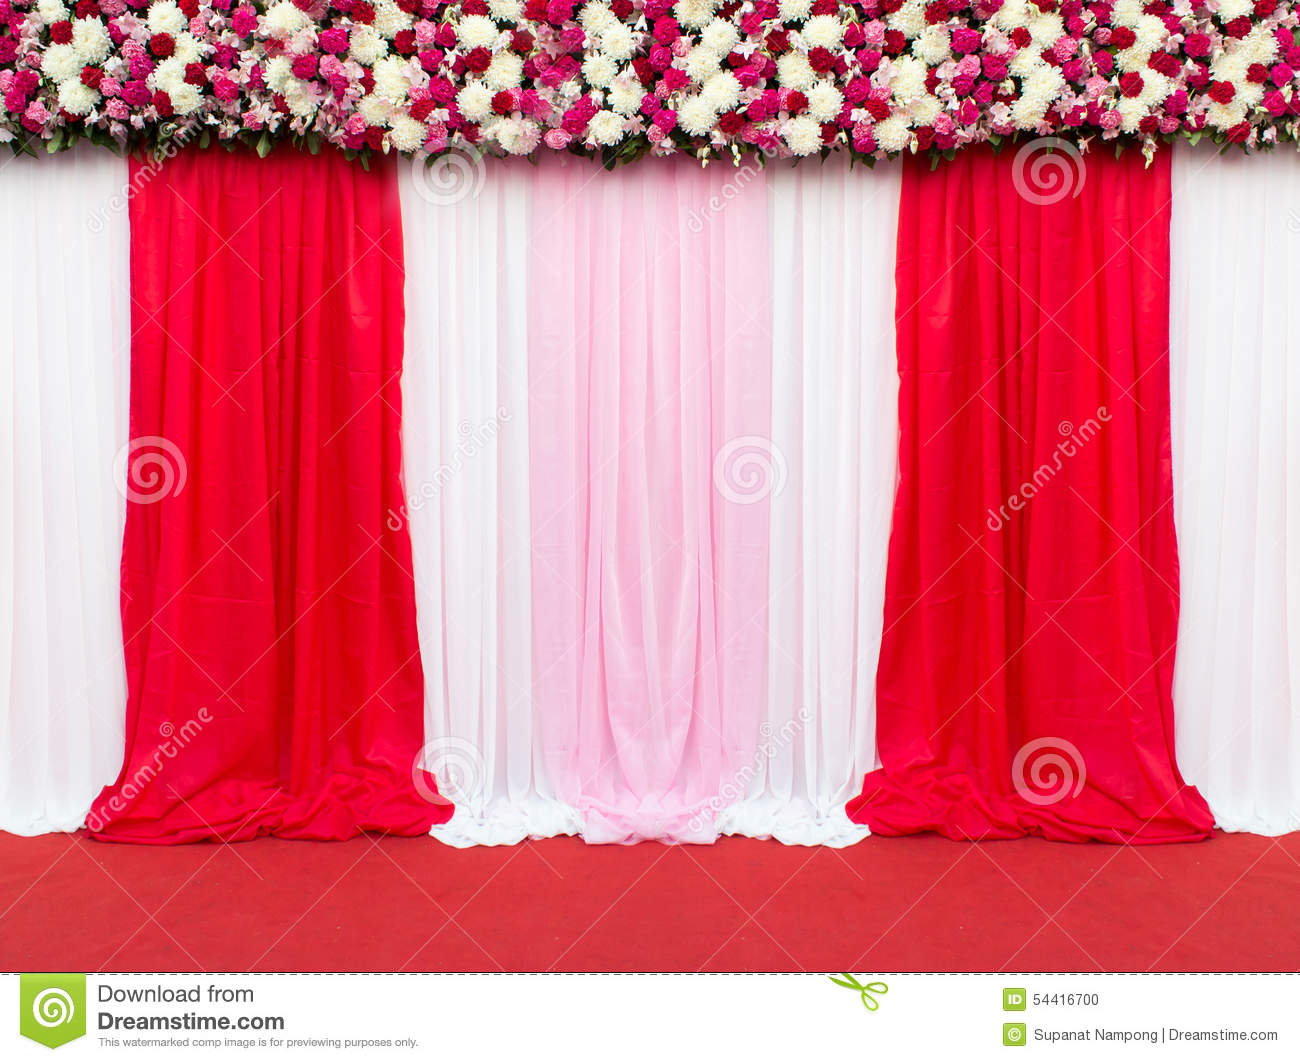 Wedding stage decoration for take picture stock photo image 54416700 for Decoration image